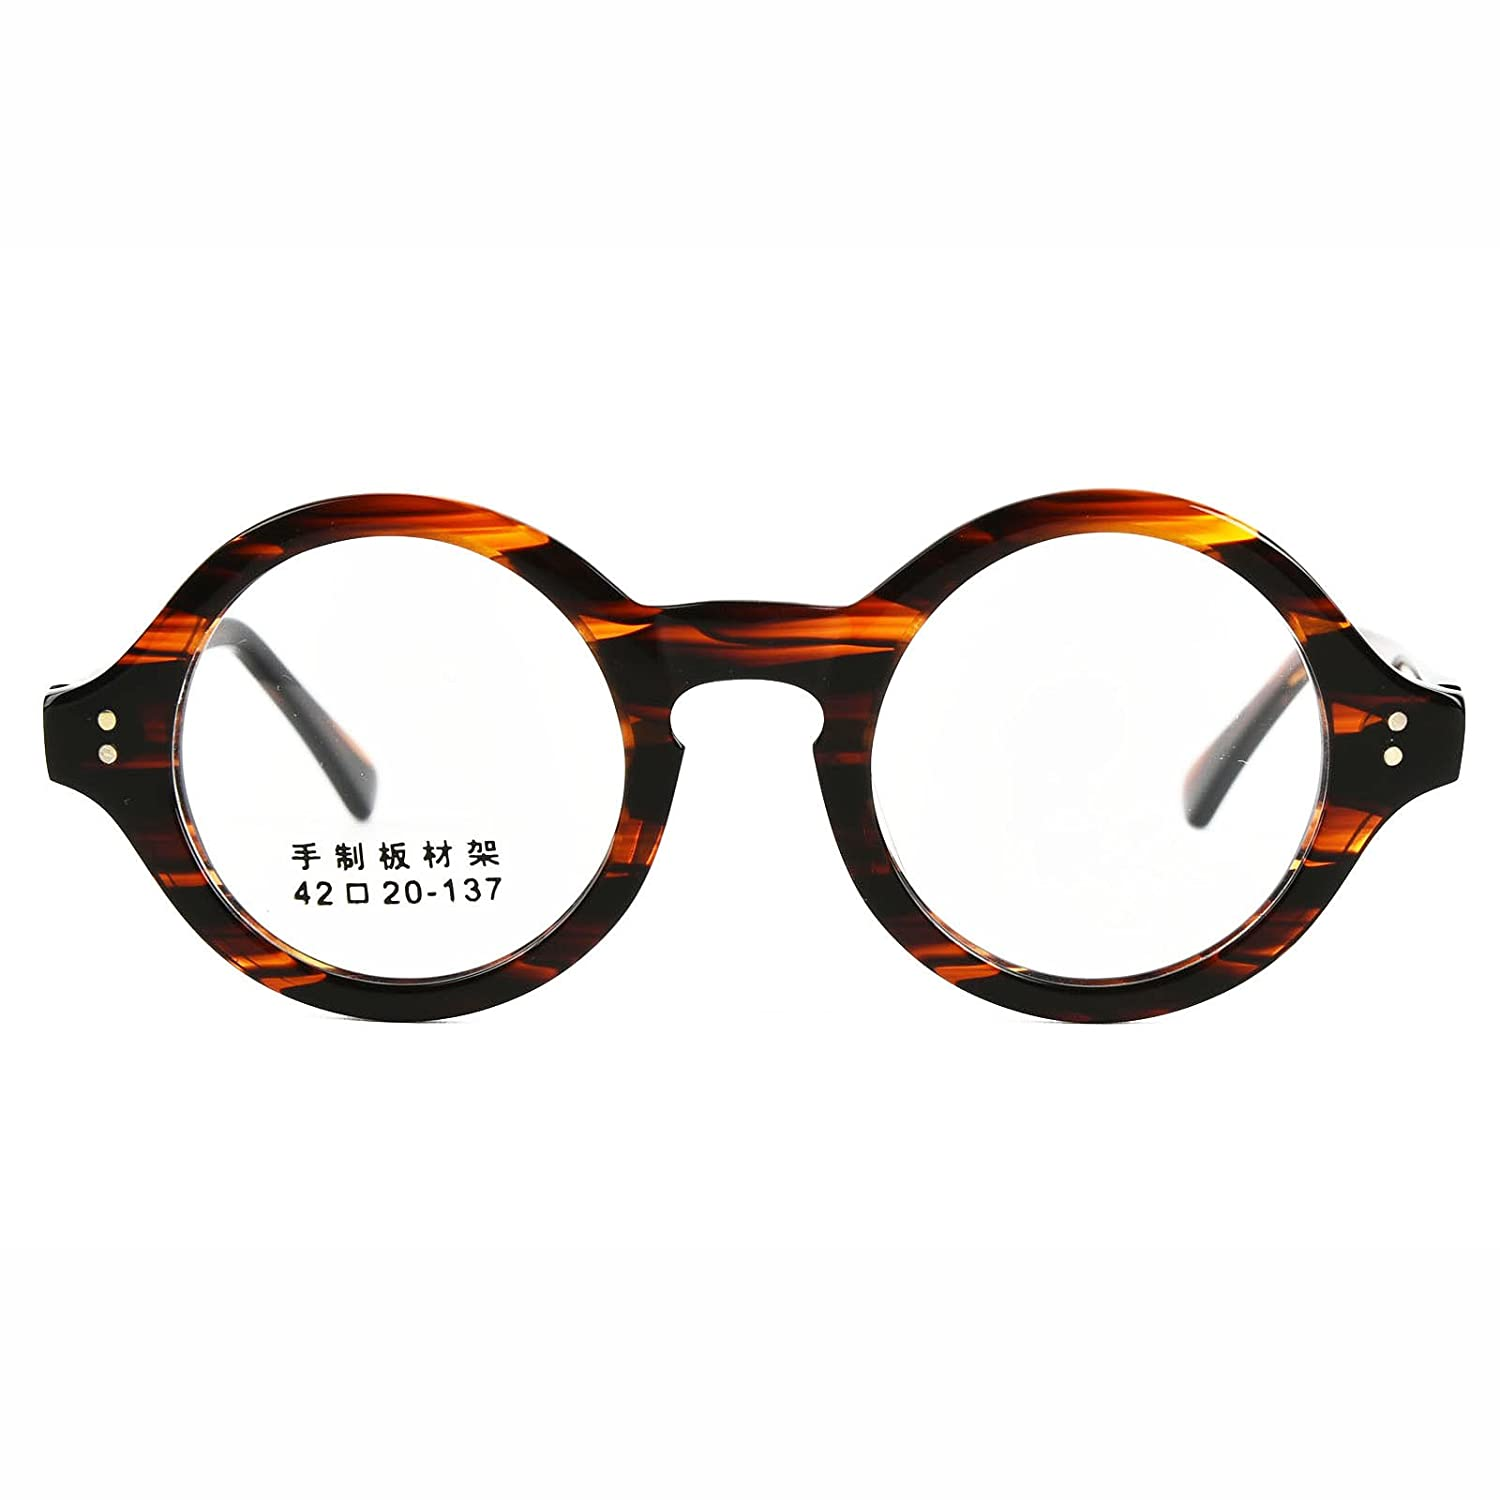 7bd86bee93 Amazon.com  38mm Vintage Small Round HANDMADE Glasses Tortoise Eyeglasses  Frames Rx able 292  Clothing